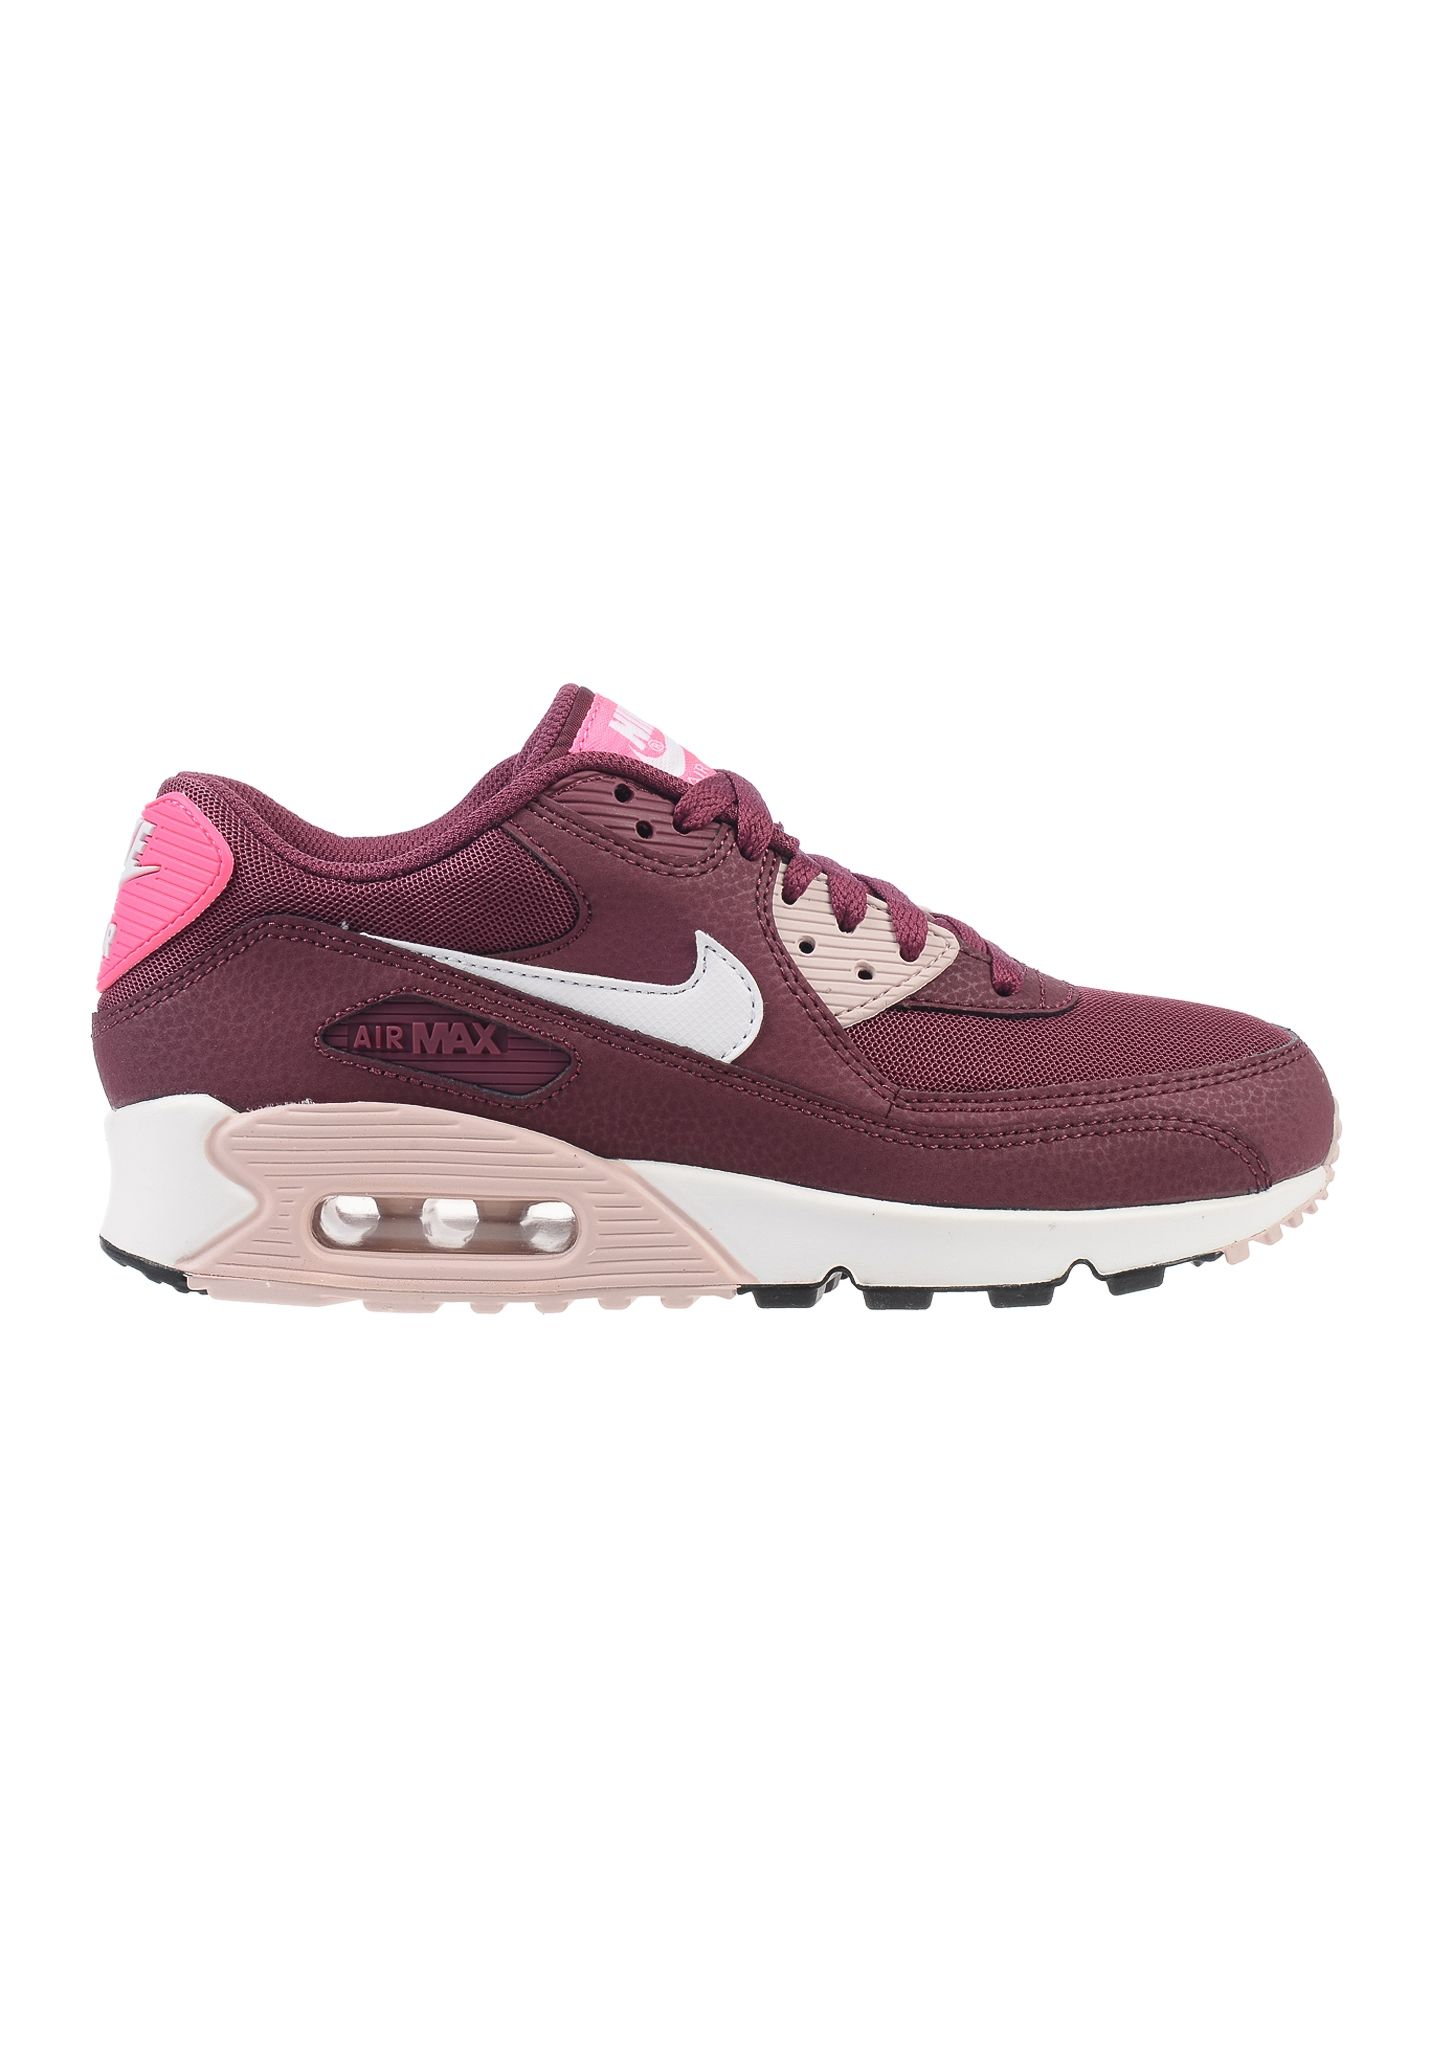 on sale d3749 423cd NIKE SPORTSWEAR Air Max 90 Essential - Sneakers for Women - Red - Planet  Sports